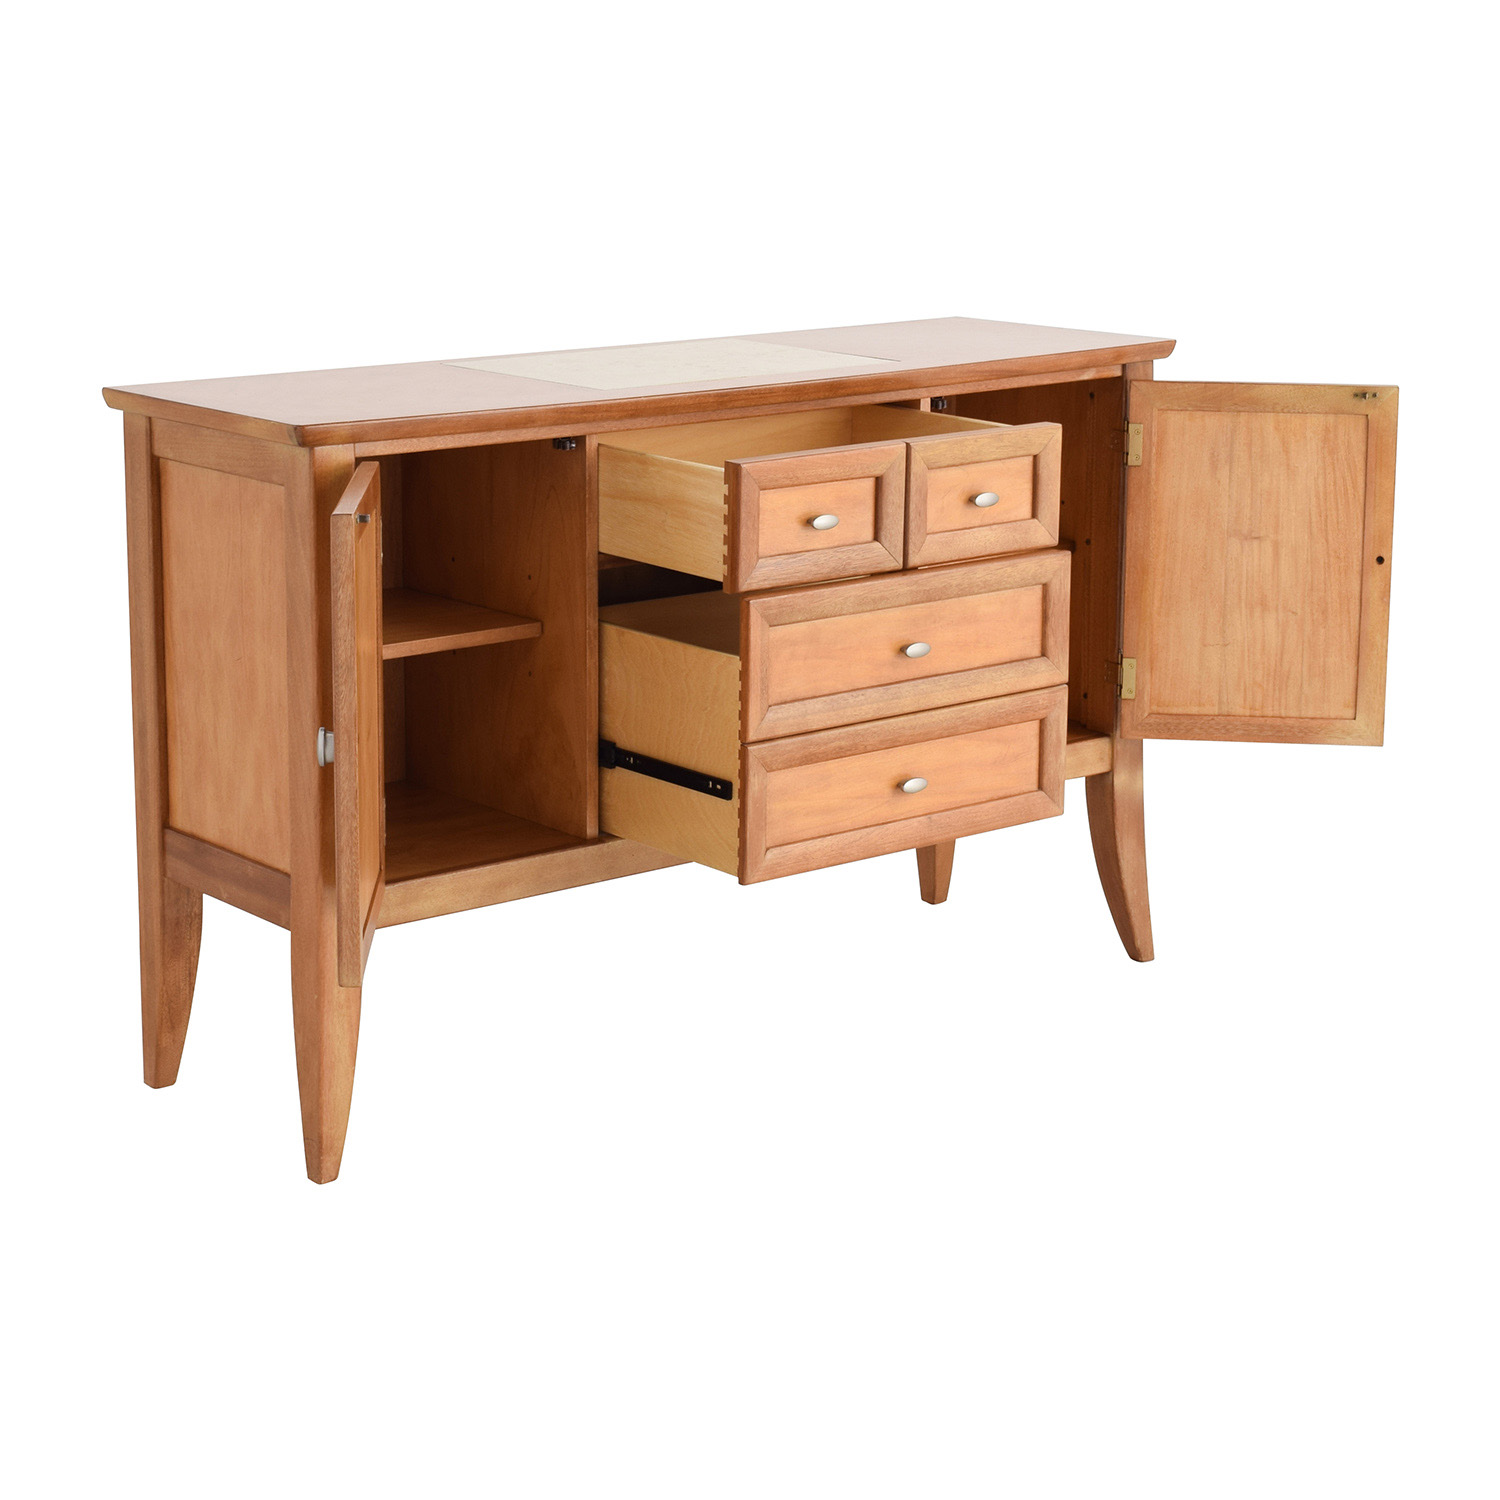 Buffet Table For Sale 90 Off Thomasville Thomasville Buffet Table Storage